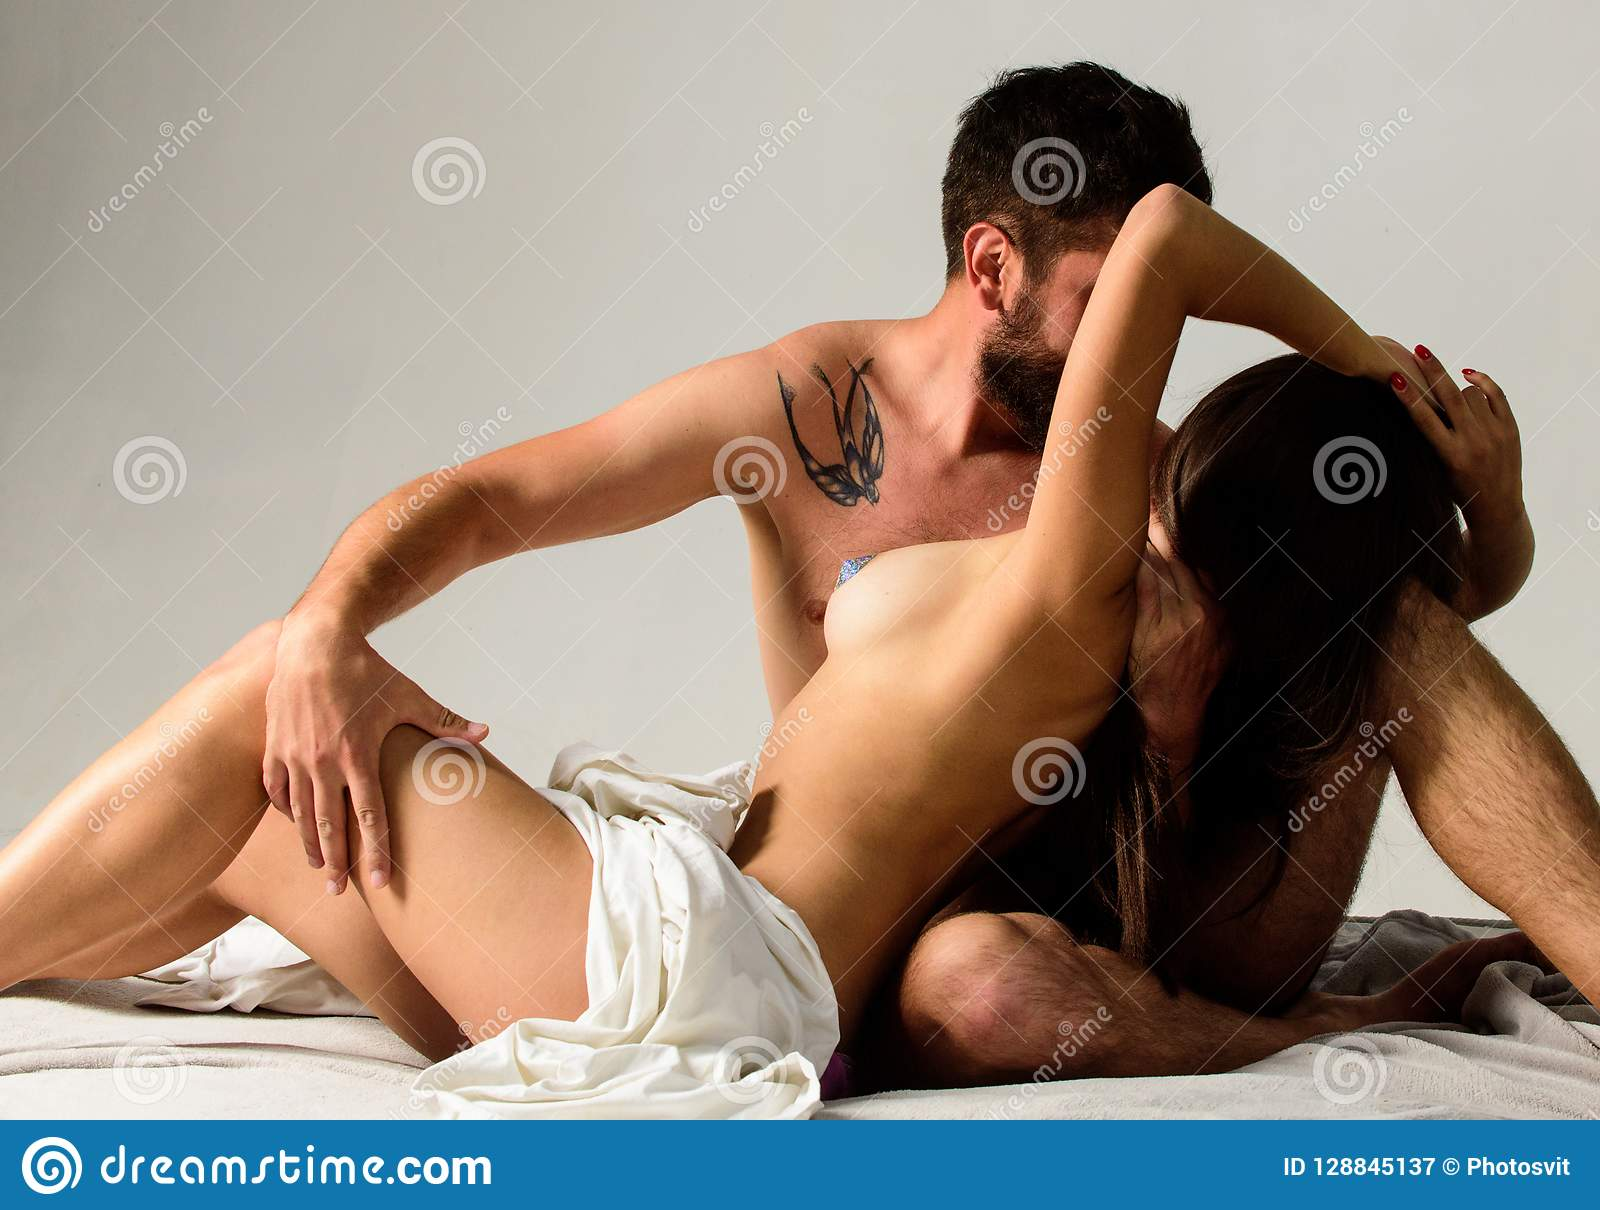 Hot foreplay pics